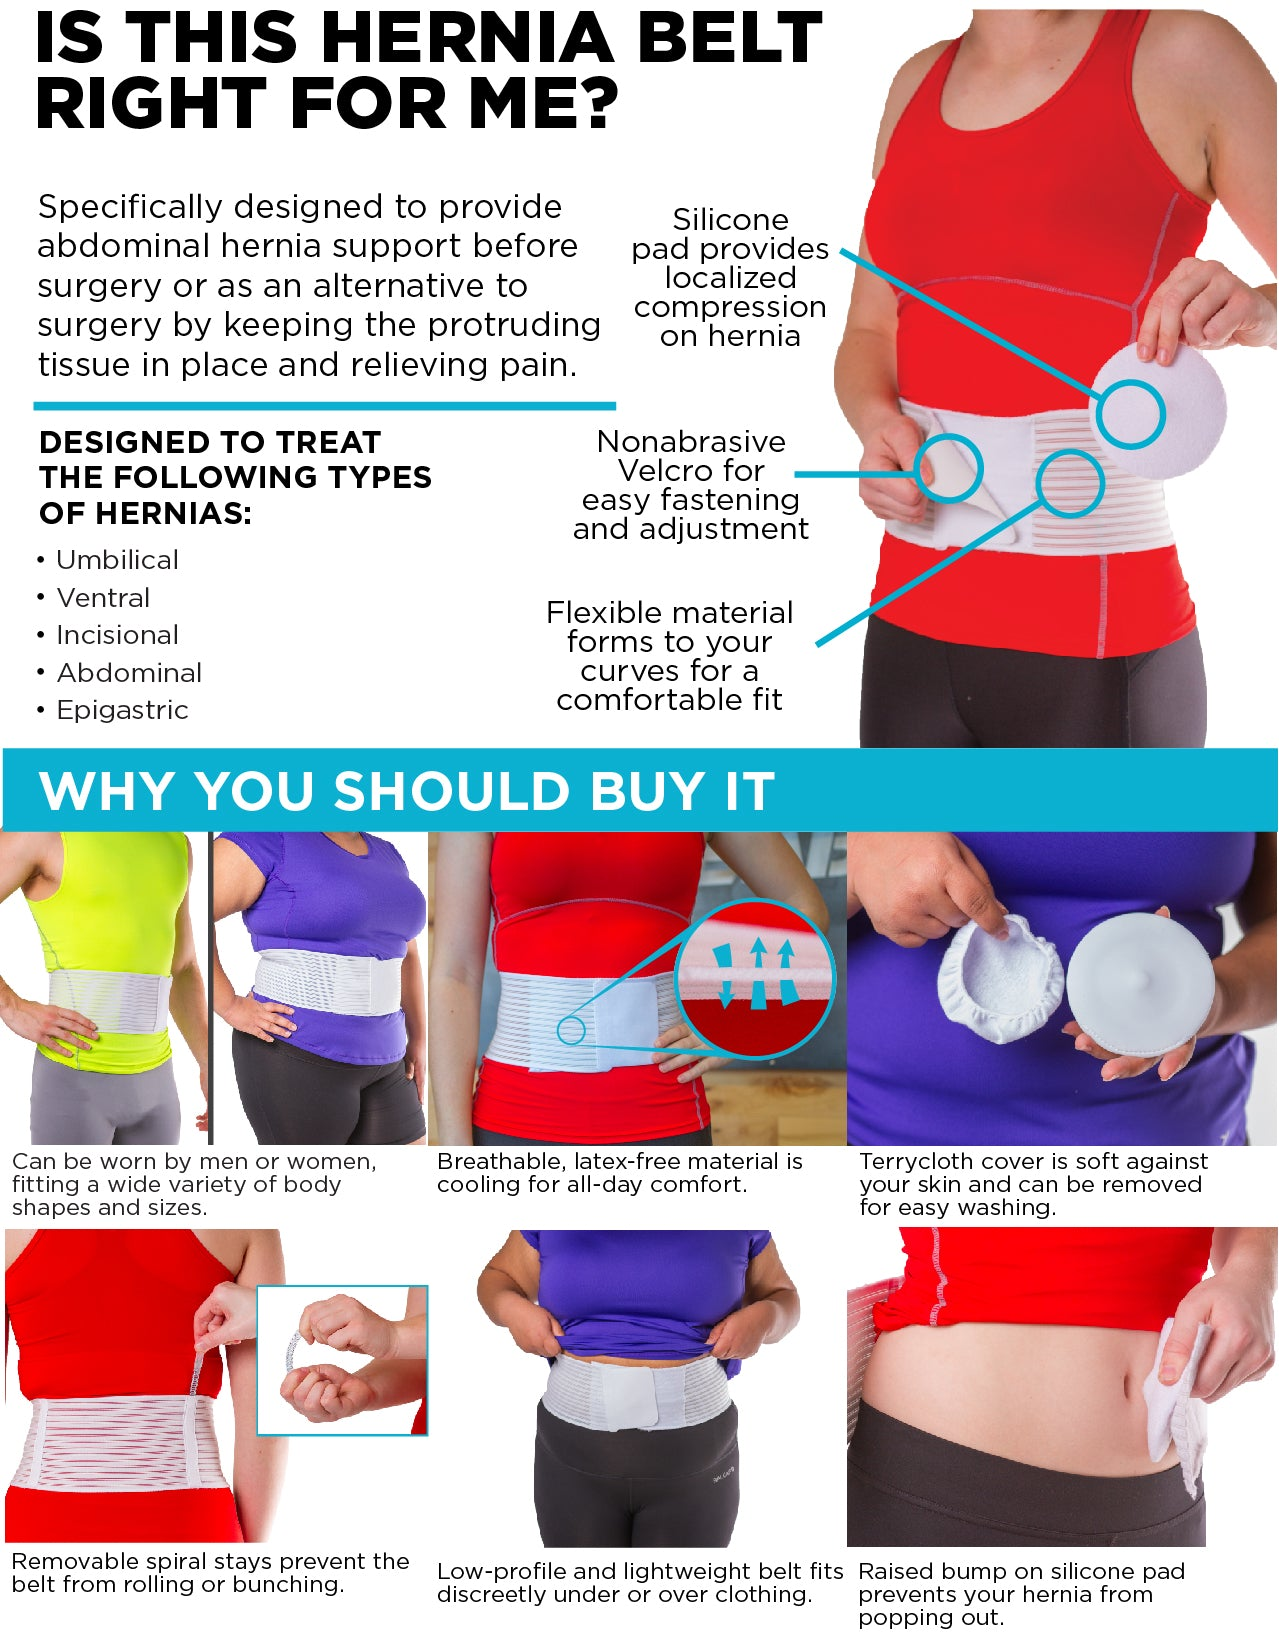 explanation of why this is the best hernia treatment belt works